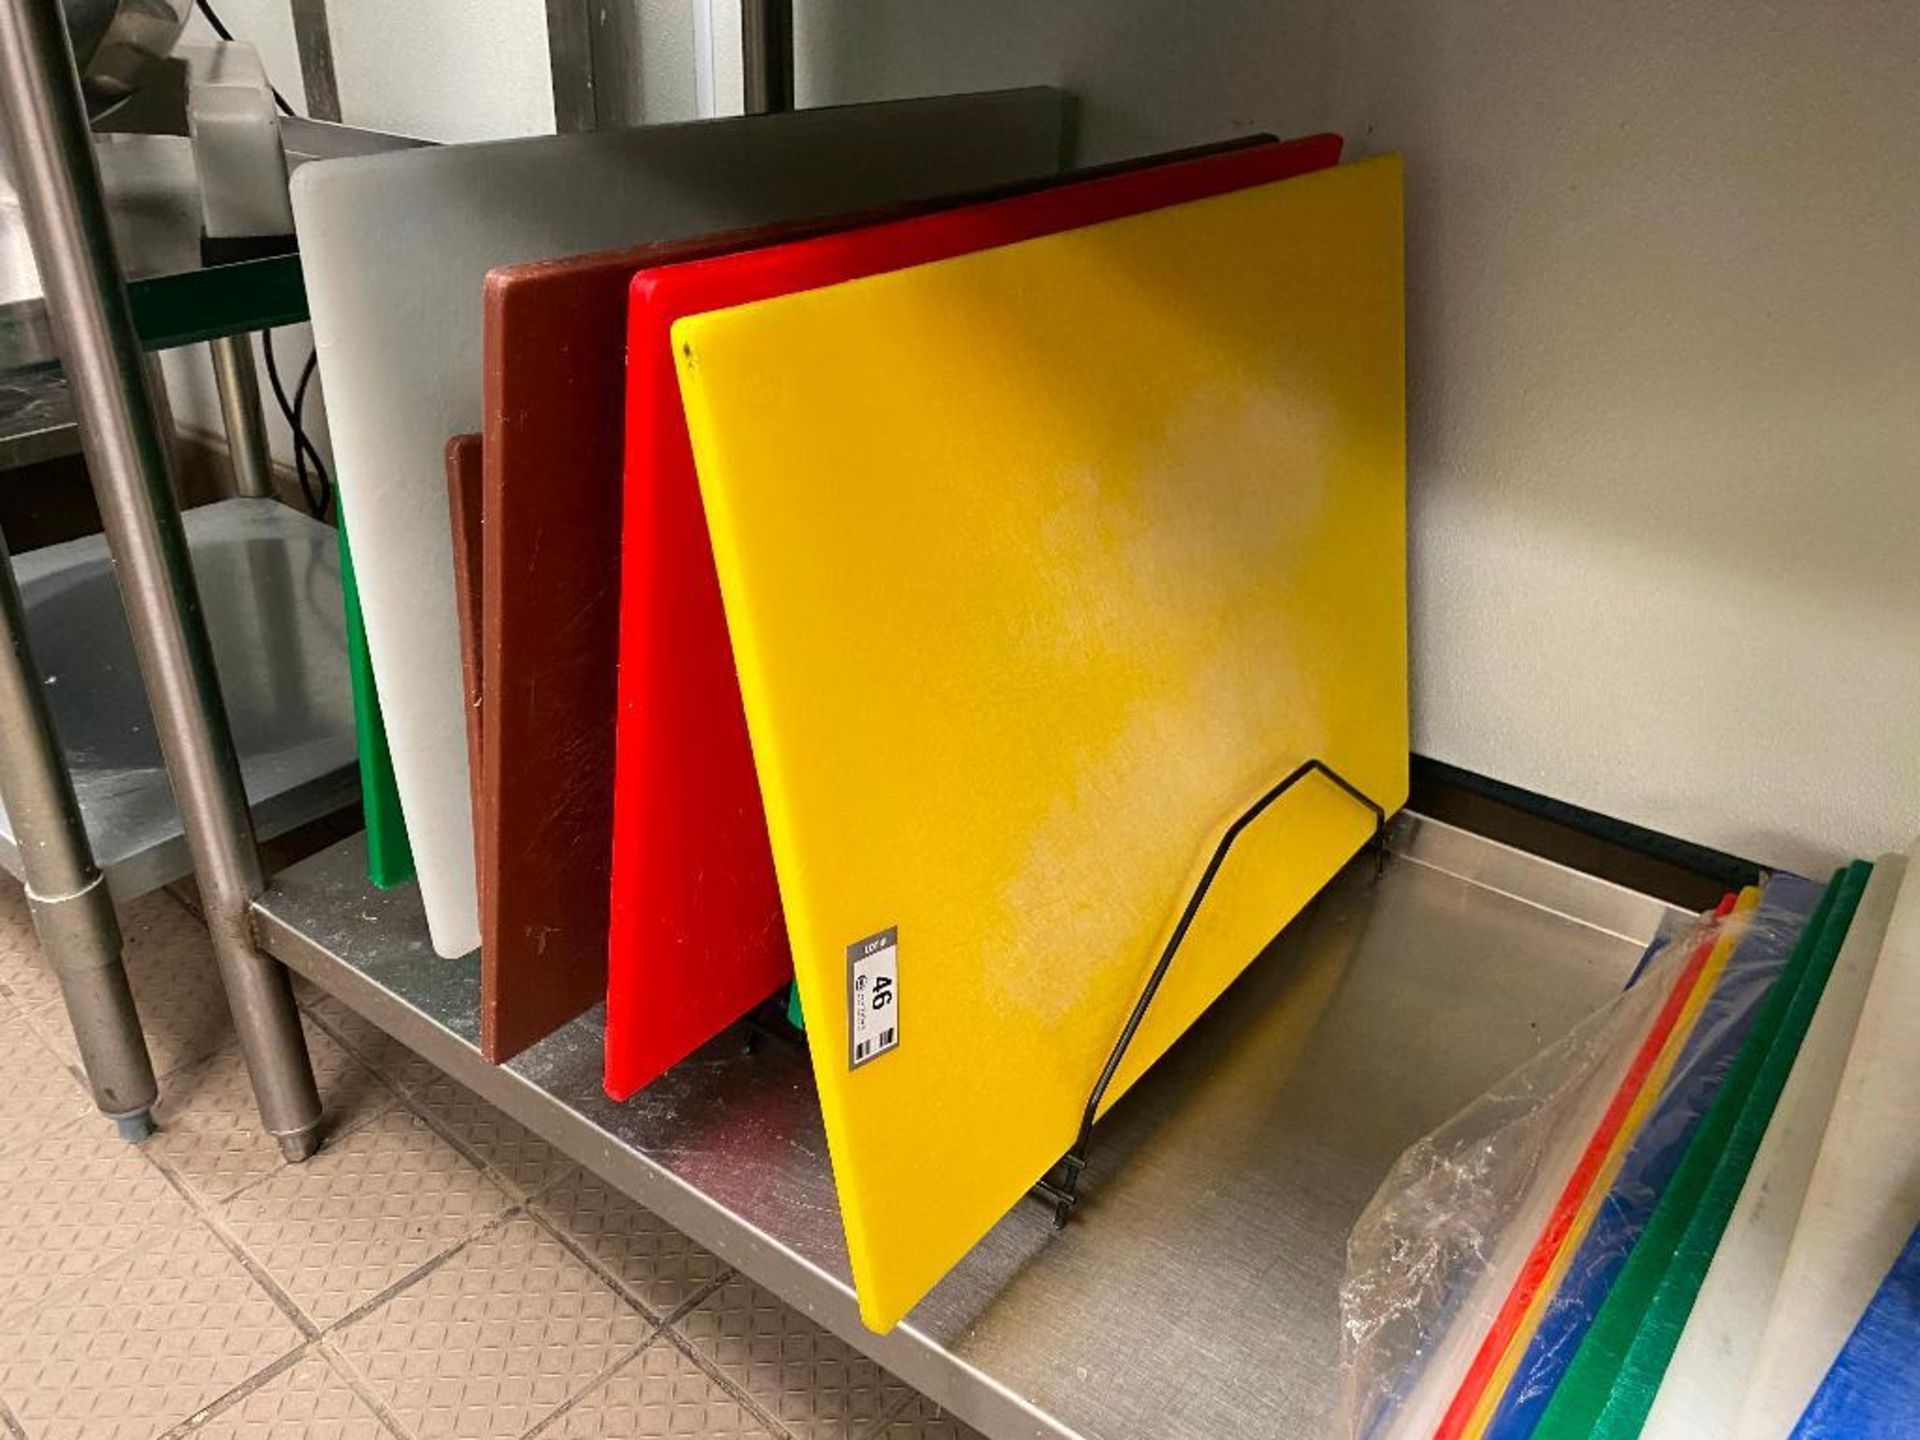 LOT OF APPROX. (10) ASSORTED SIZE & CUTTING BOARDS WITH 2 CUTTING BOARD WIRE HOLDERS - Image 2 of 3